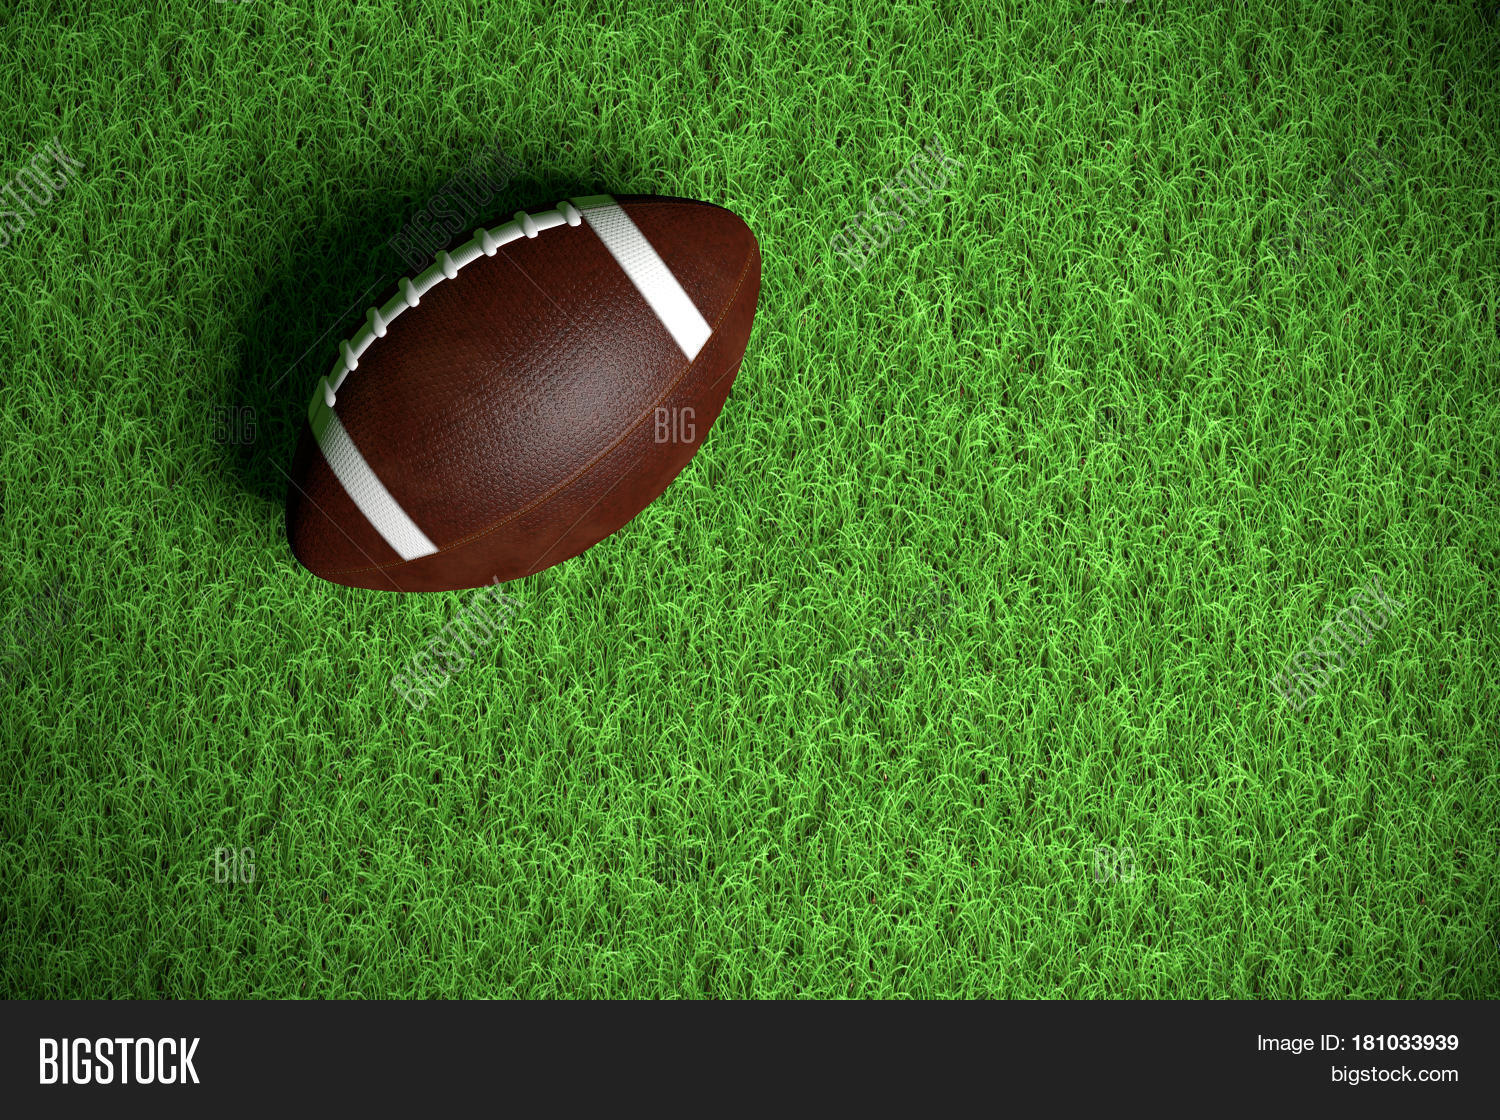 American Football On Image Photo Free Trial Bigstock